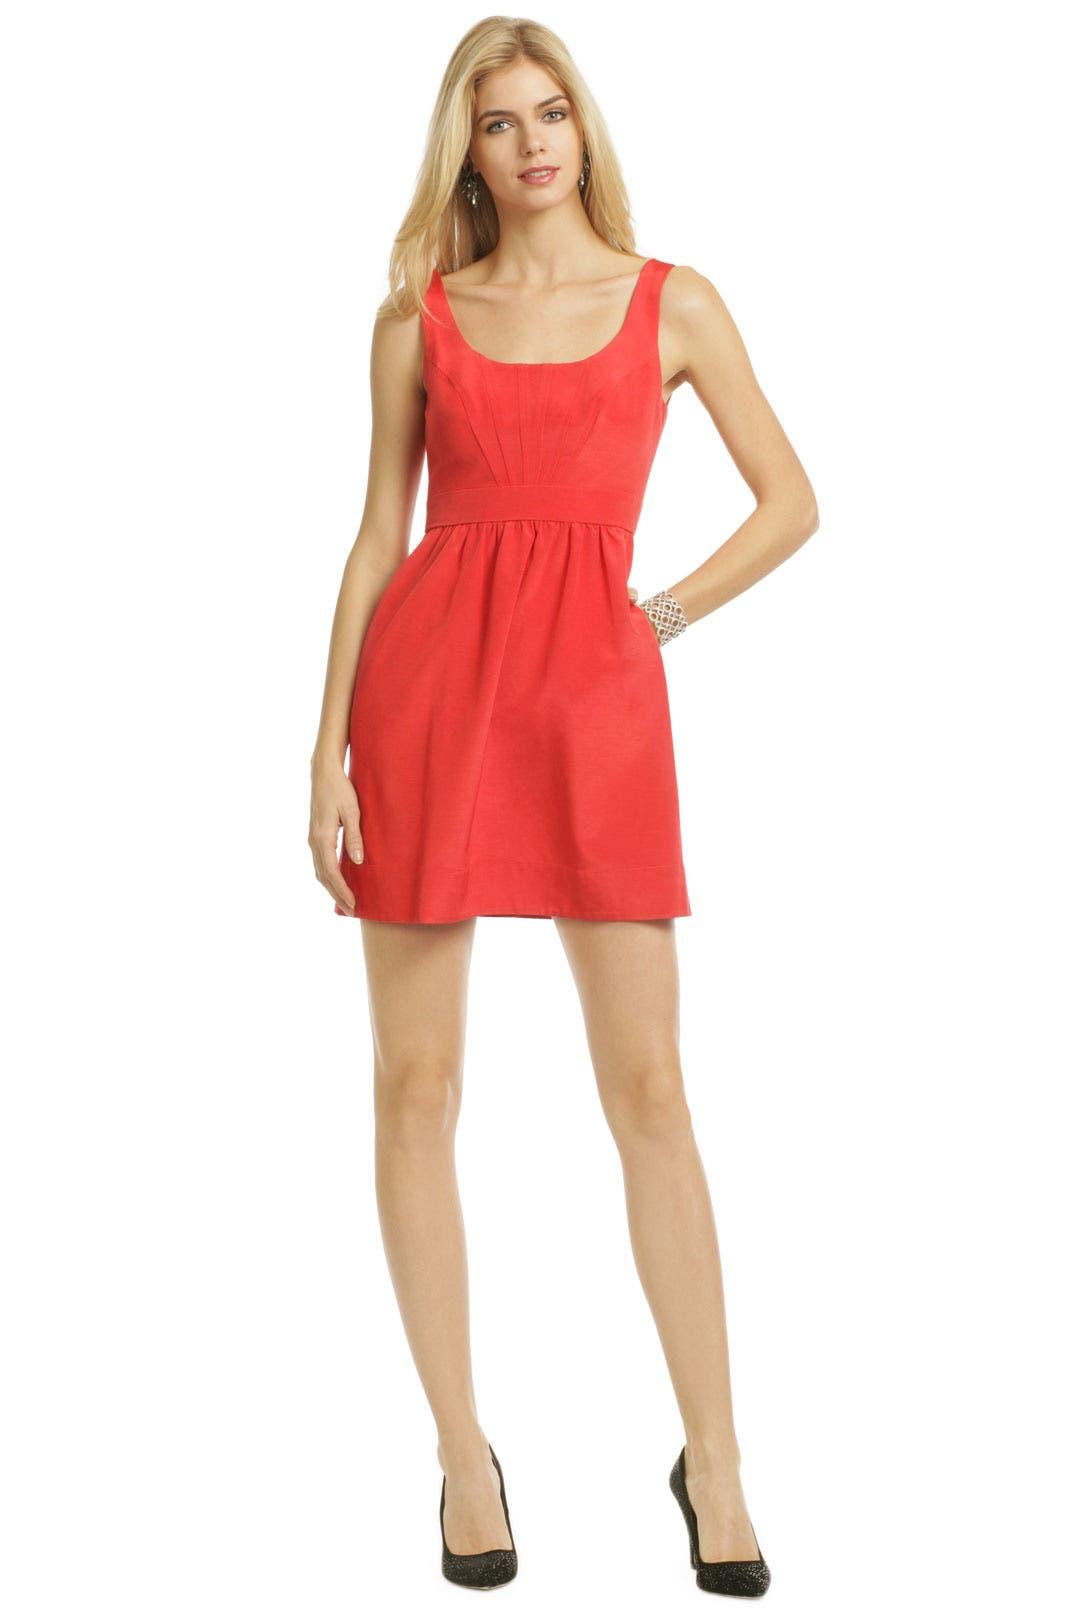 Shuffle Dress by Shoshanna for $75  Rent the Runway